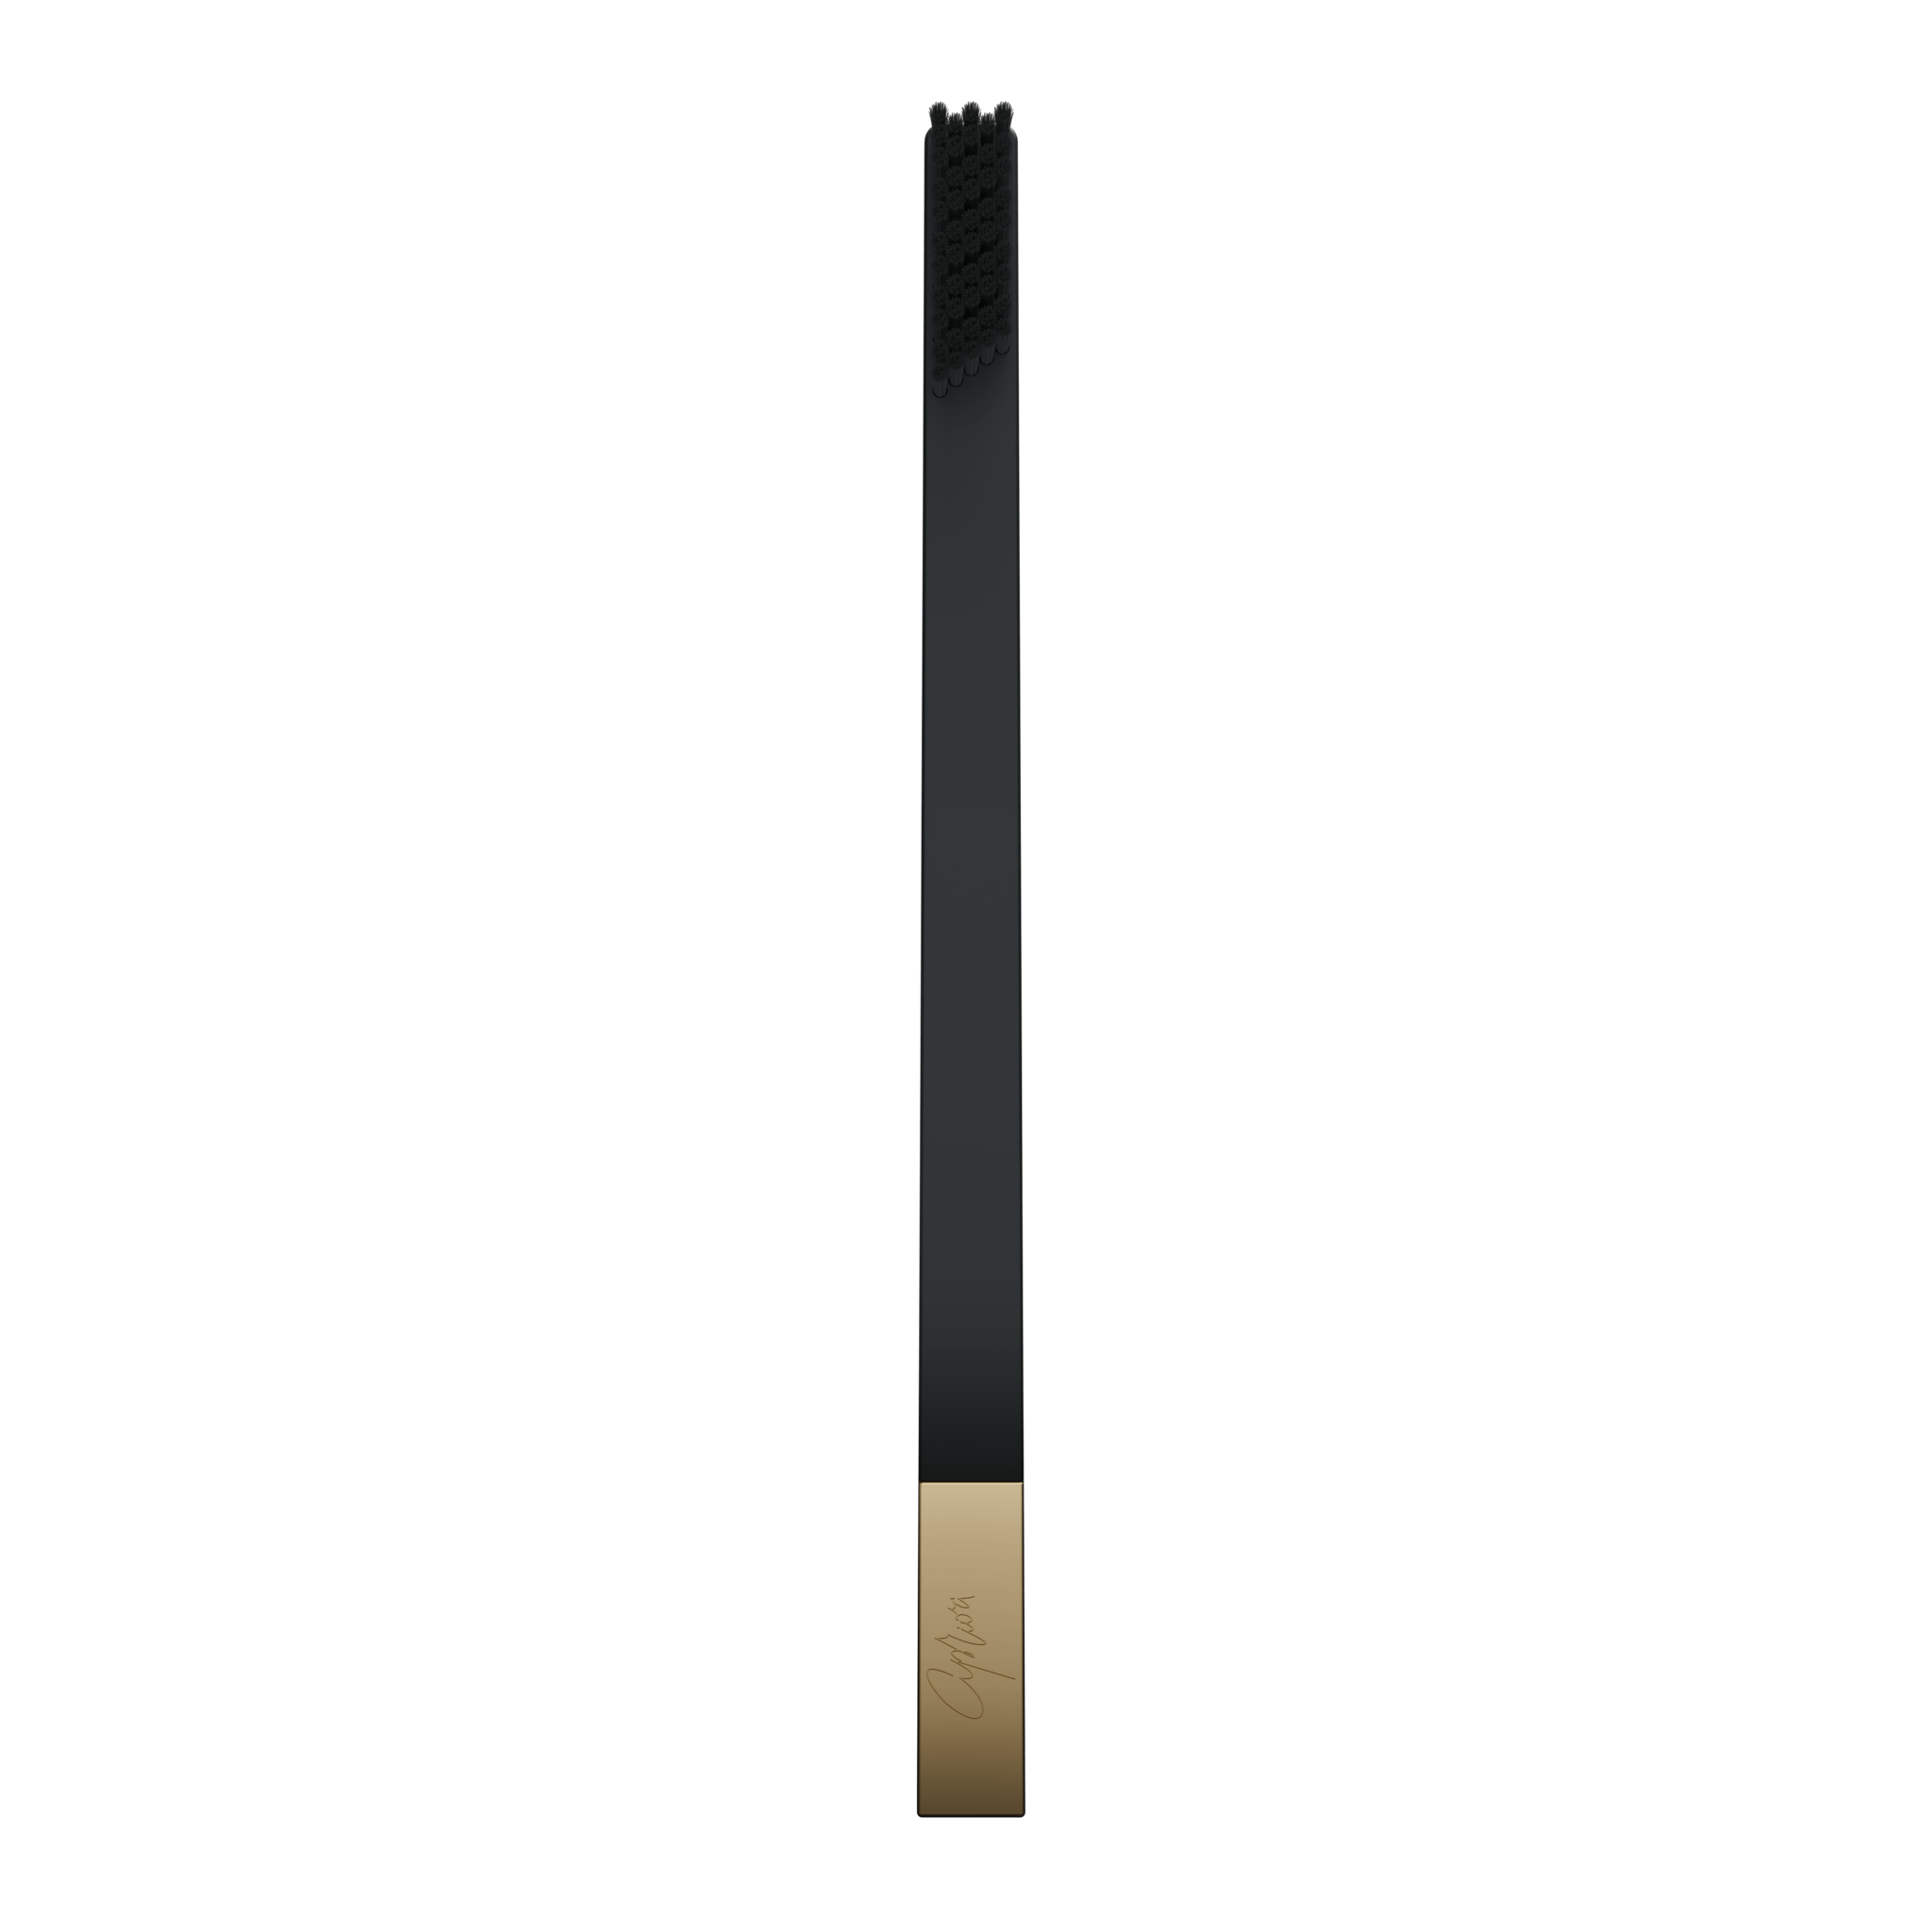 SLIM by Apriori black & gold disposable toothbrush